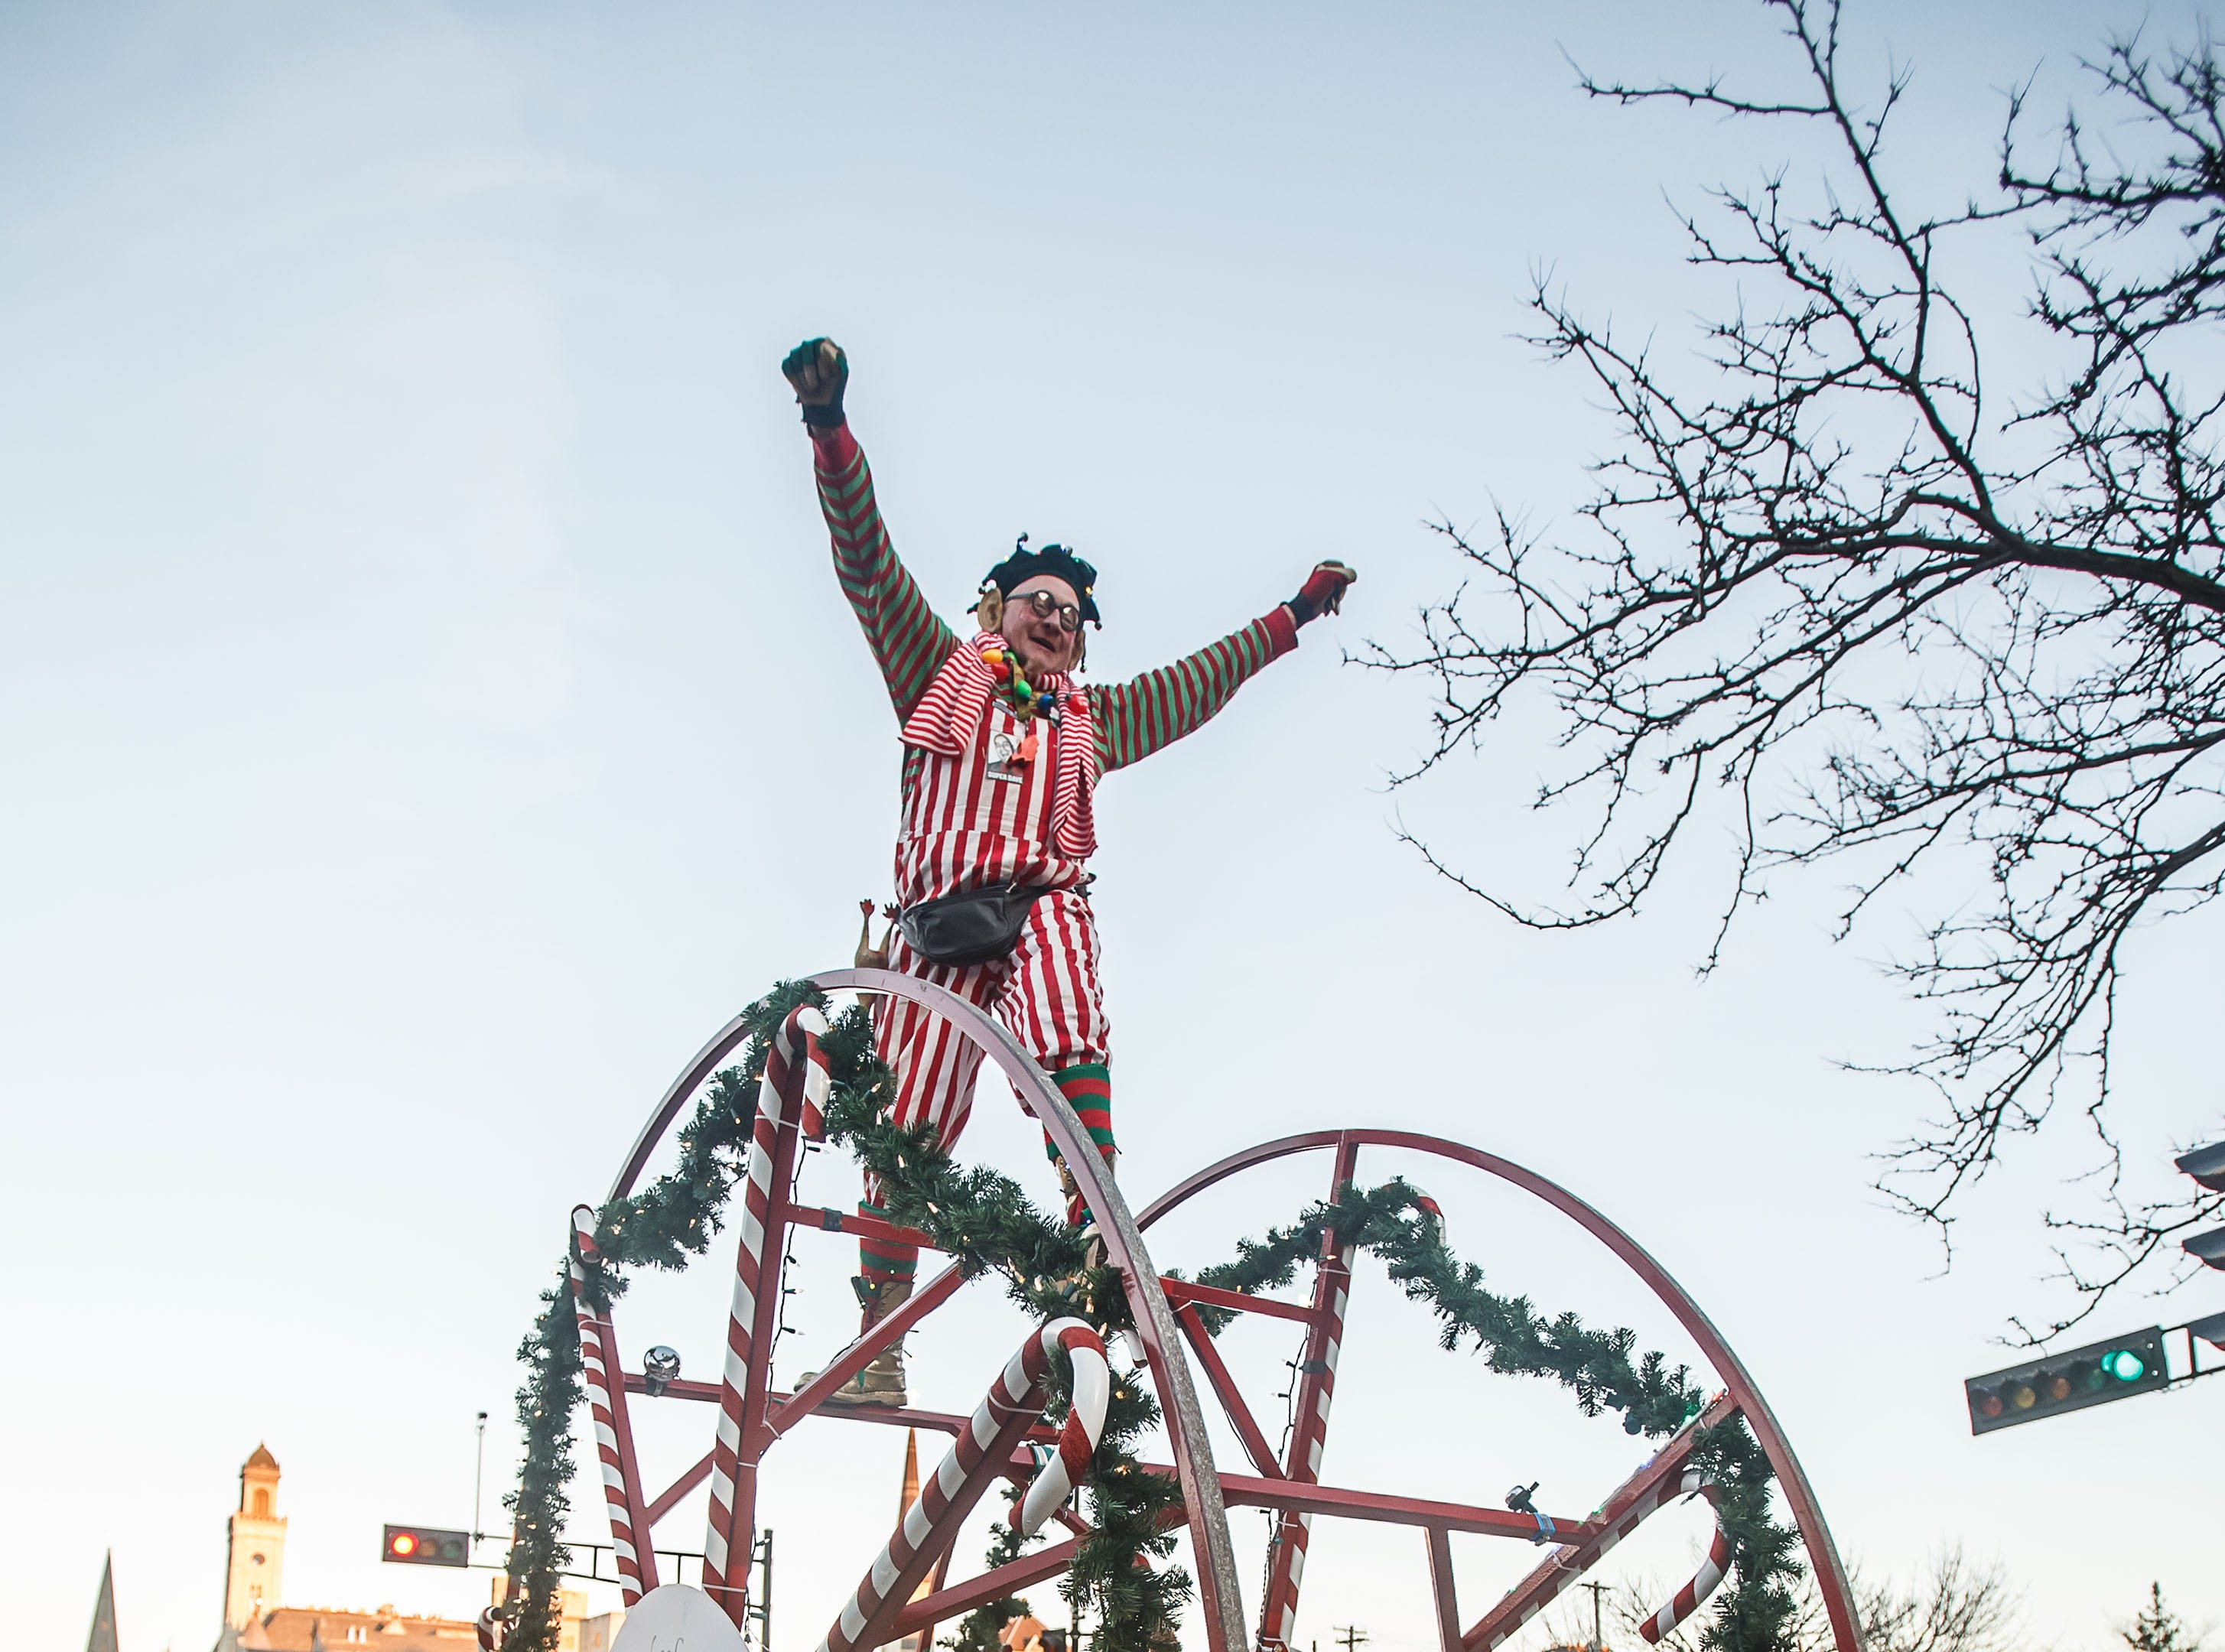 Melvin the Whacky Wheeler delights parade-goers during the 56th annual Waukesha Christmas Parade on Sunday, Nov. 18, 2018.